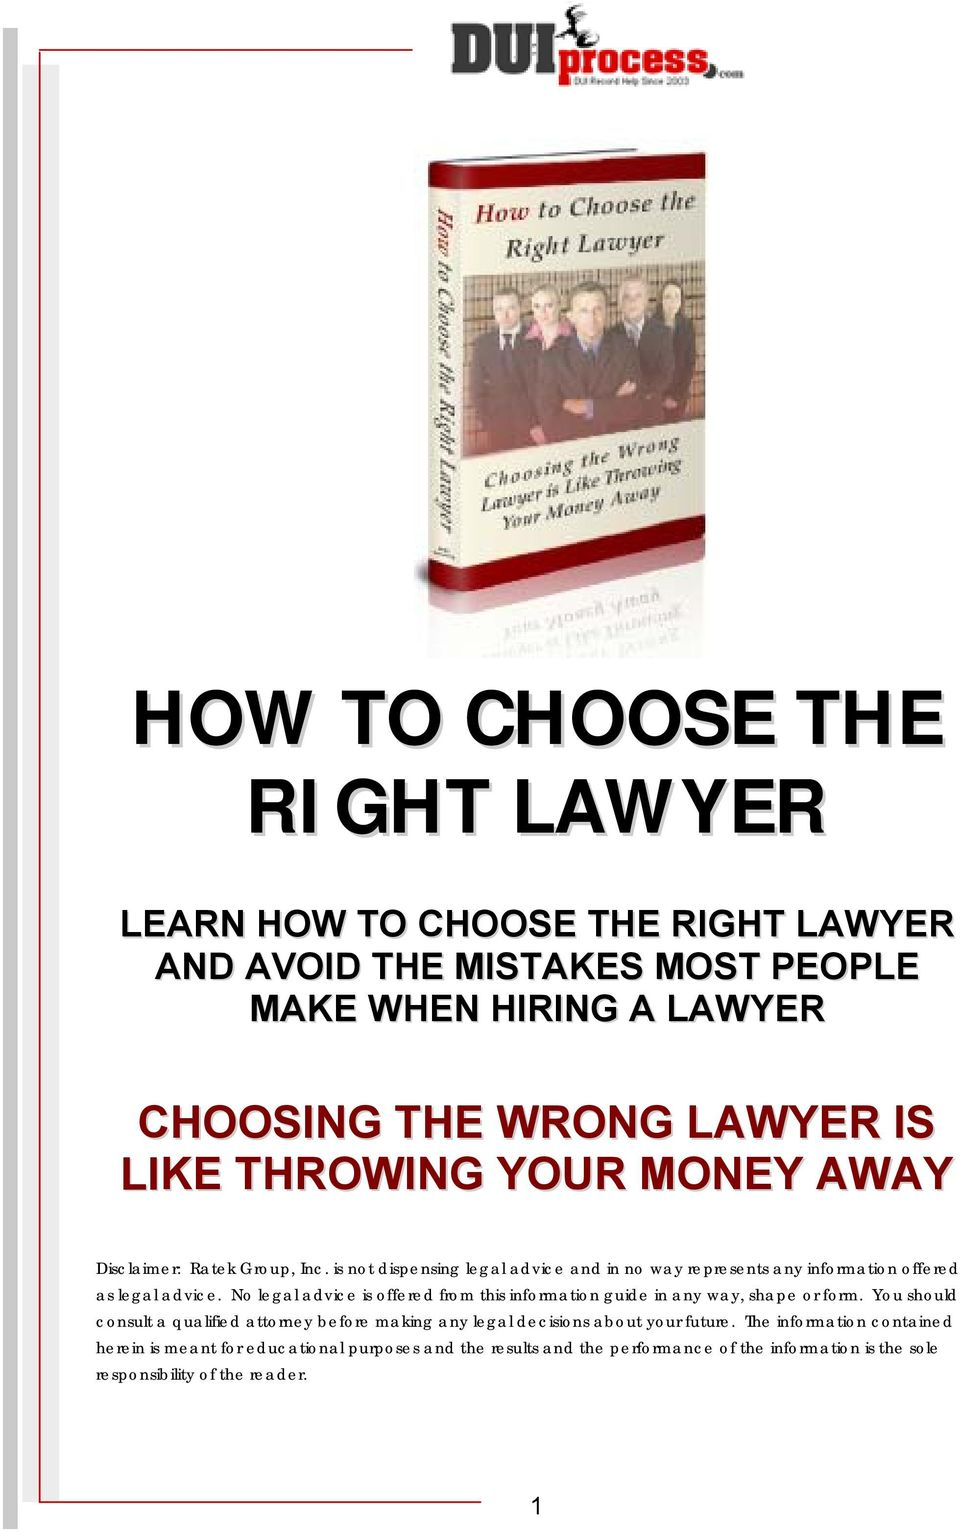 No legal advice is offered from this information guide in any way, shape or form.